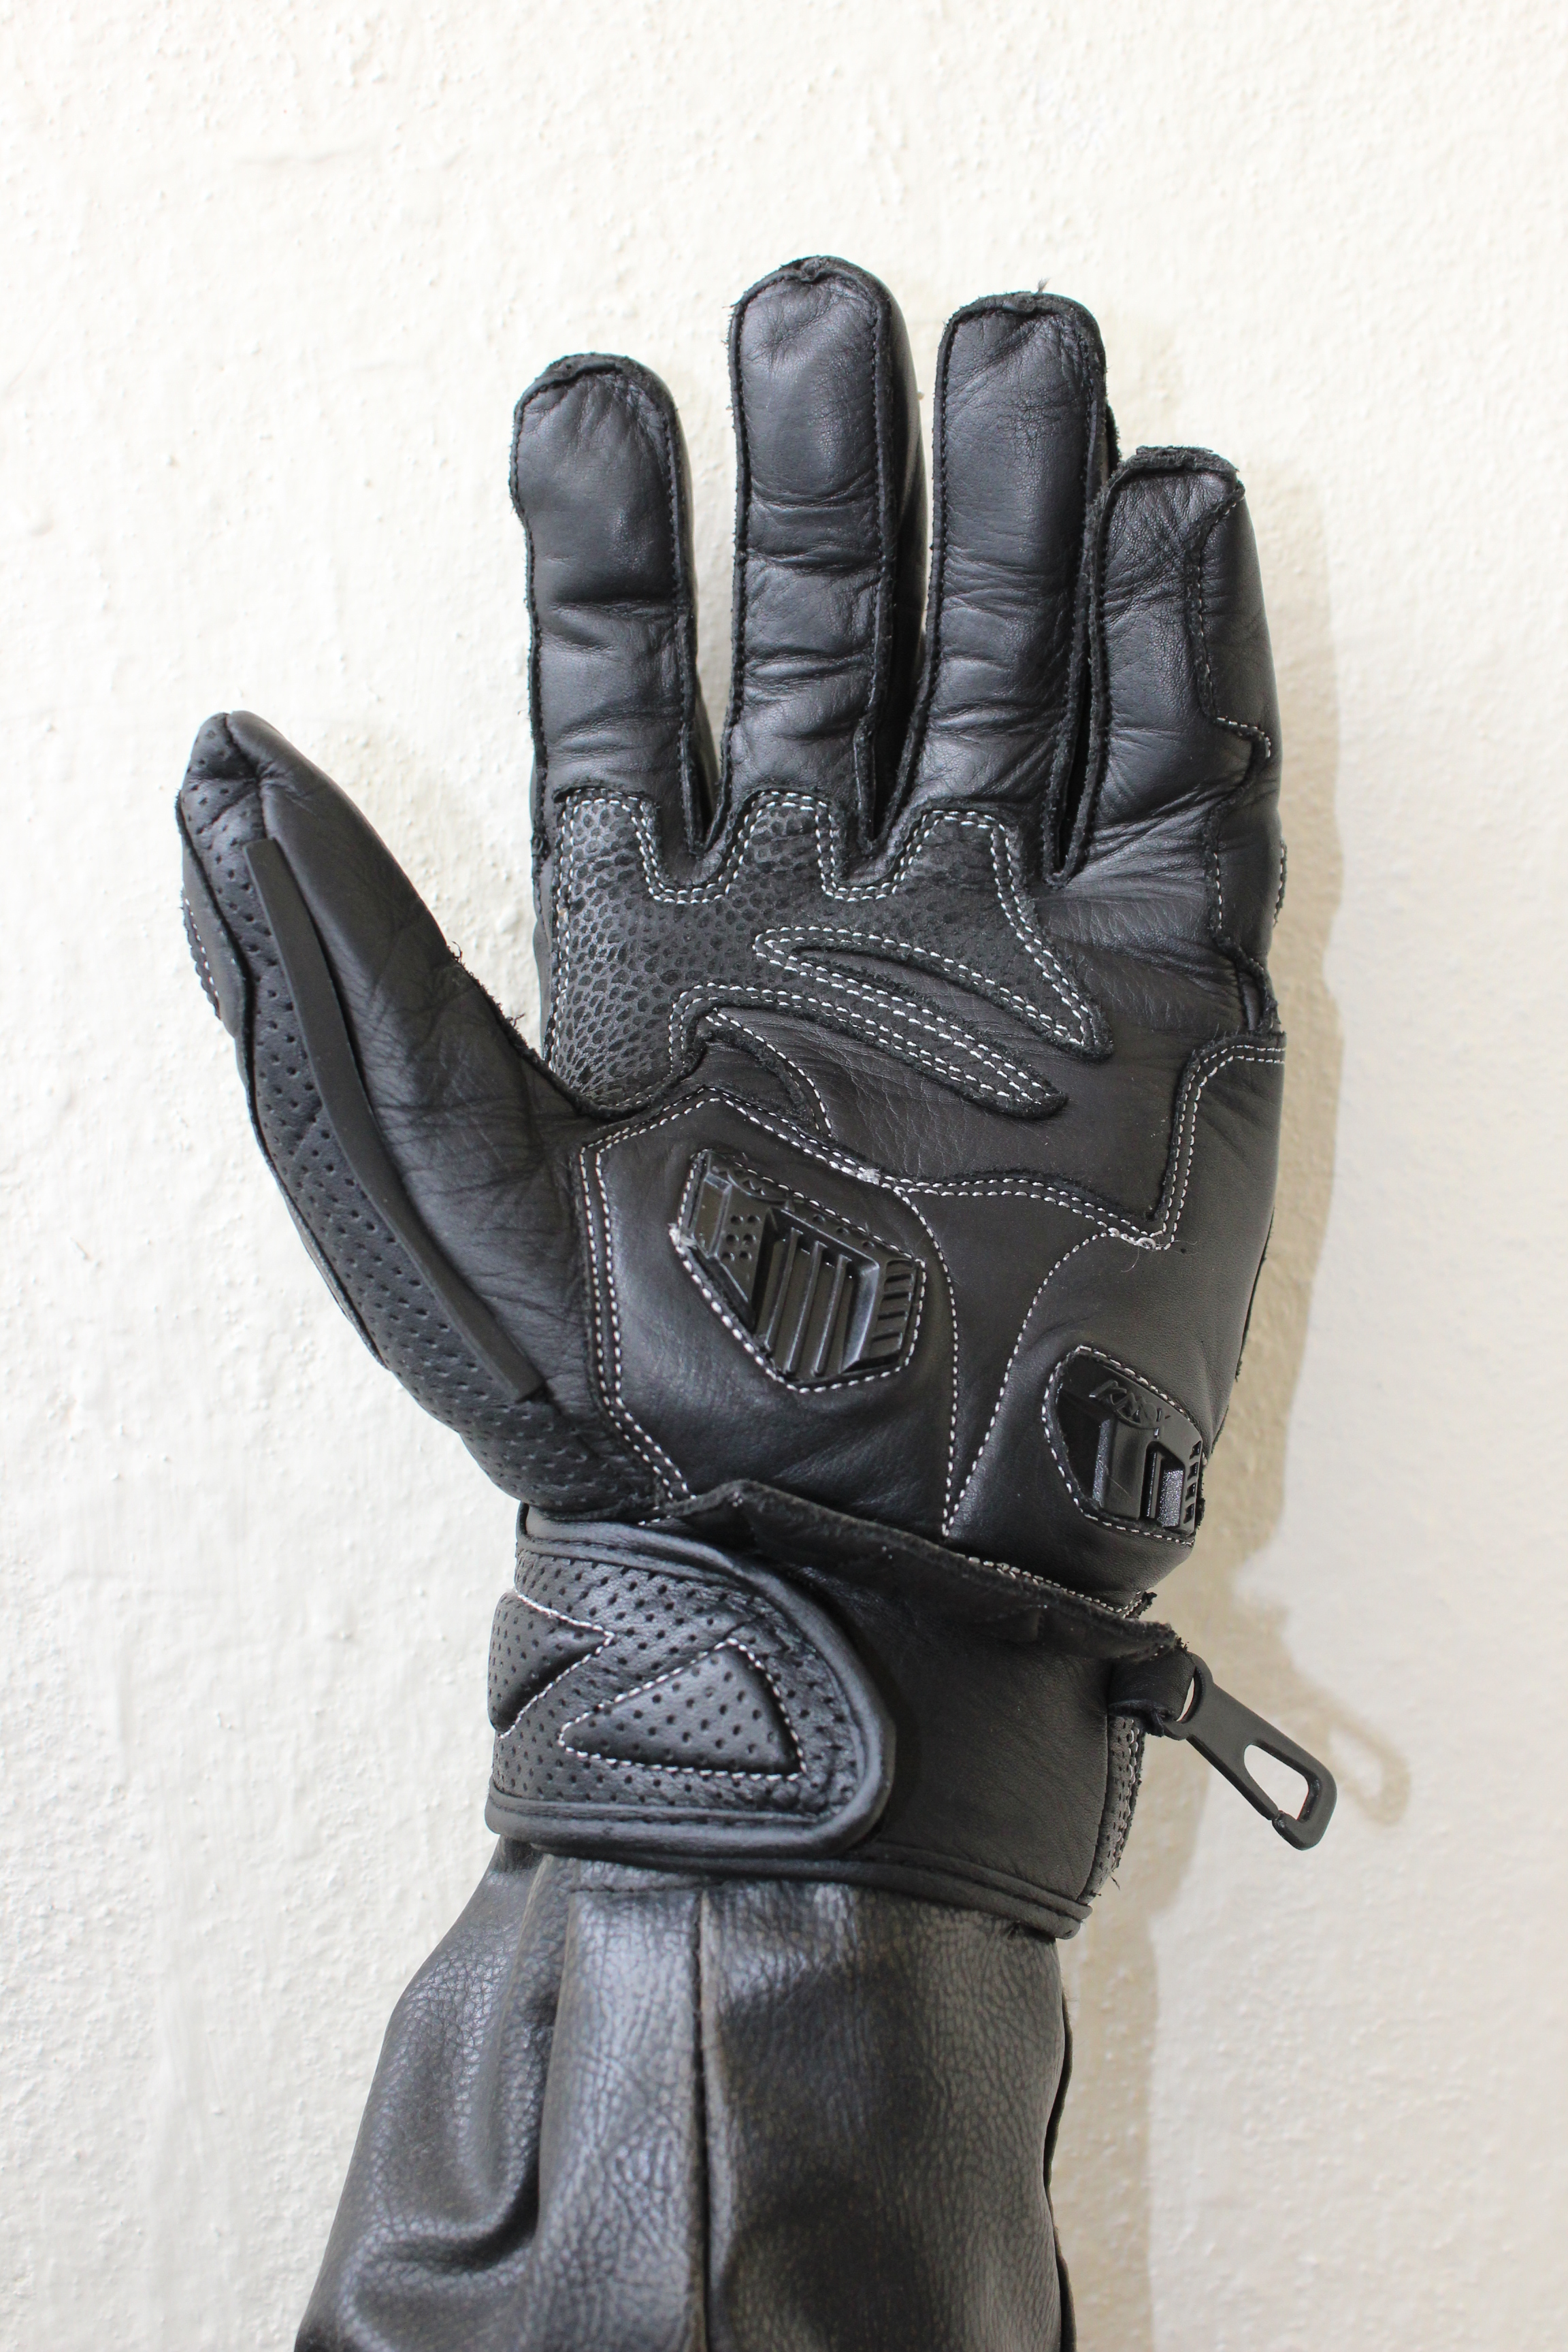 Motorcycle gloves bangalore face